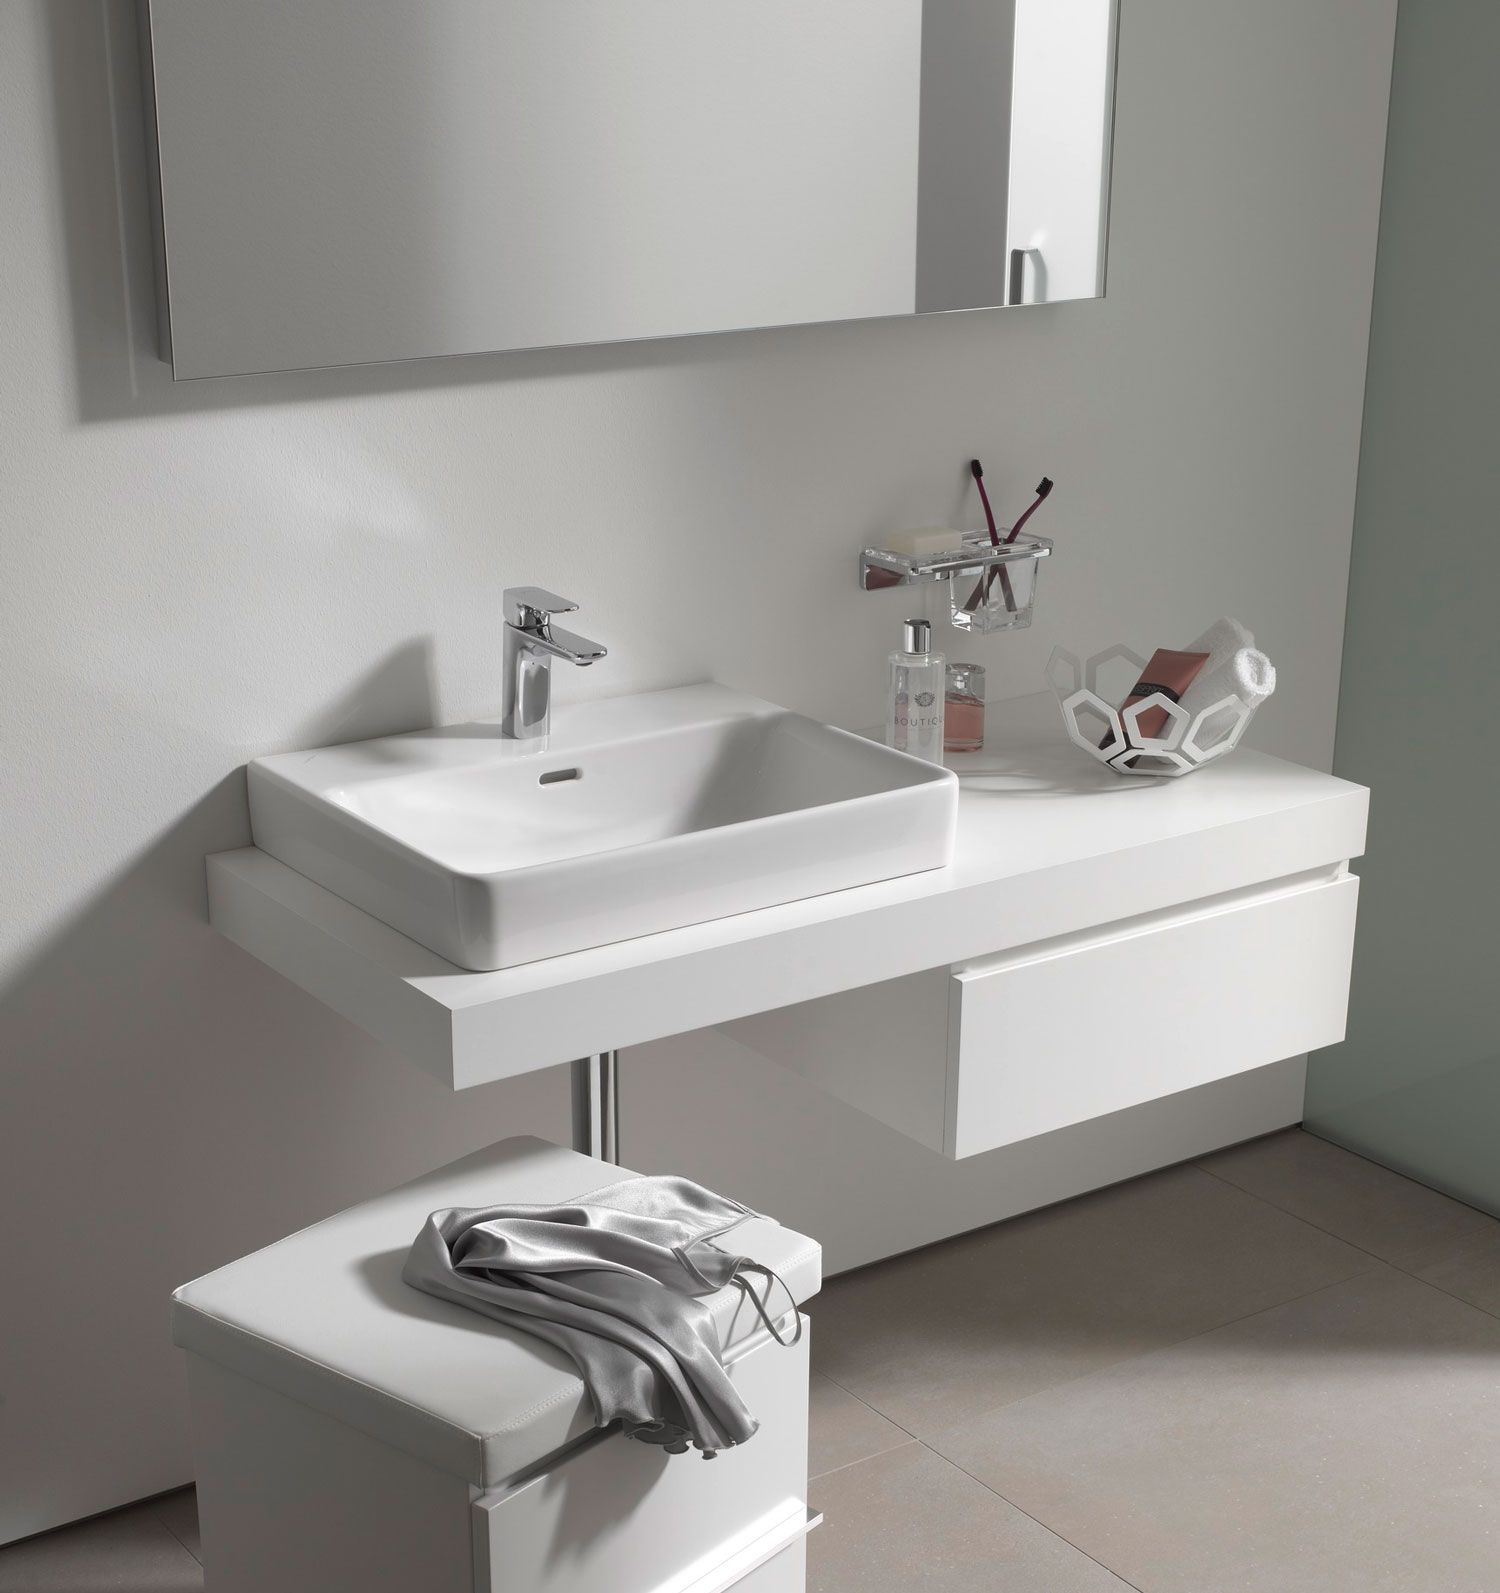 Laufen Pro S White Bathroom Laufen Pro S Is The New Member Of The Successful Laufen Pro Series Thanks To The Delicate Redesign The Ele Arbeitsplatte Kuchenarbeitsplatte Und Waschtischplatte